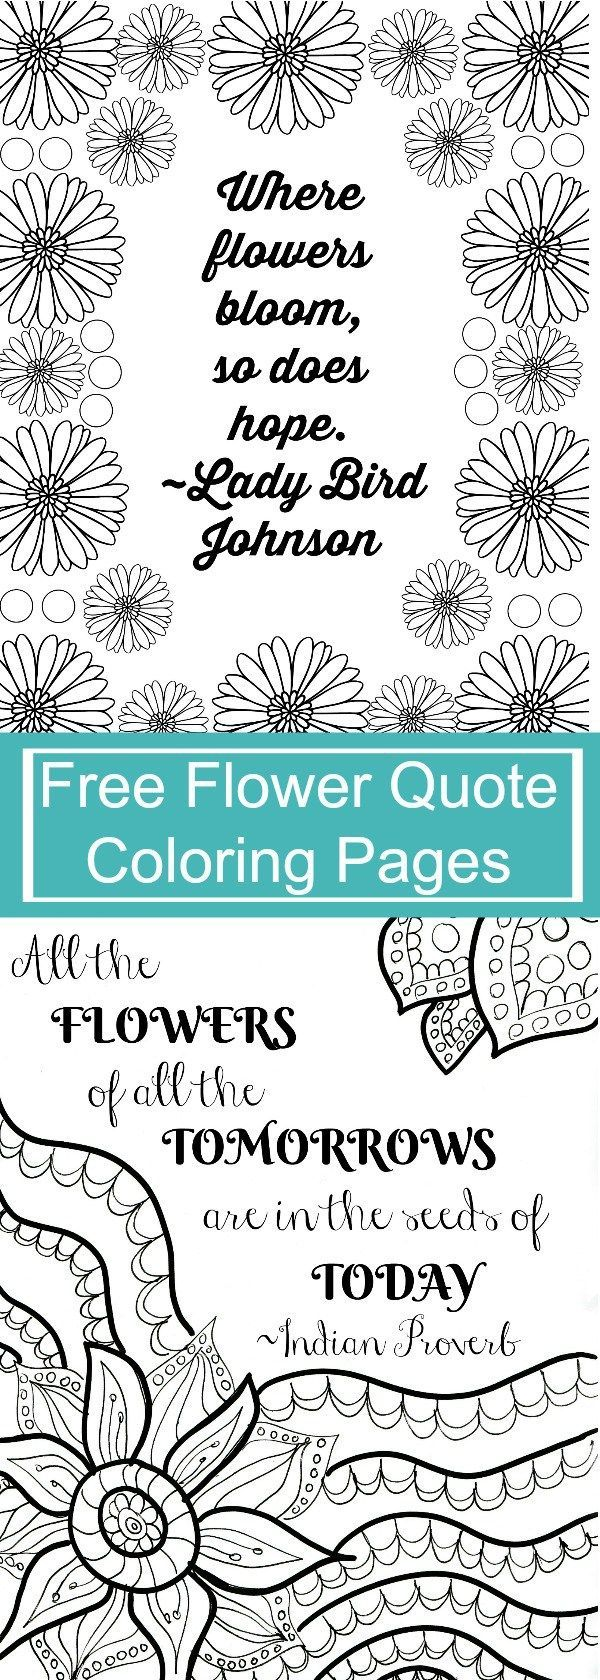 FREE Printable Flower Quote Coloring Pages | Free printable ...